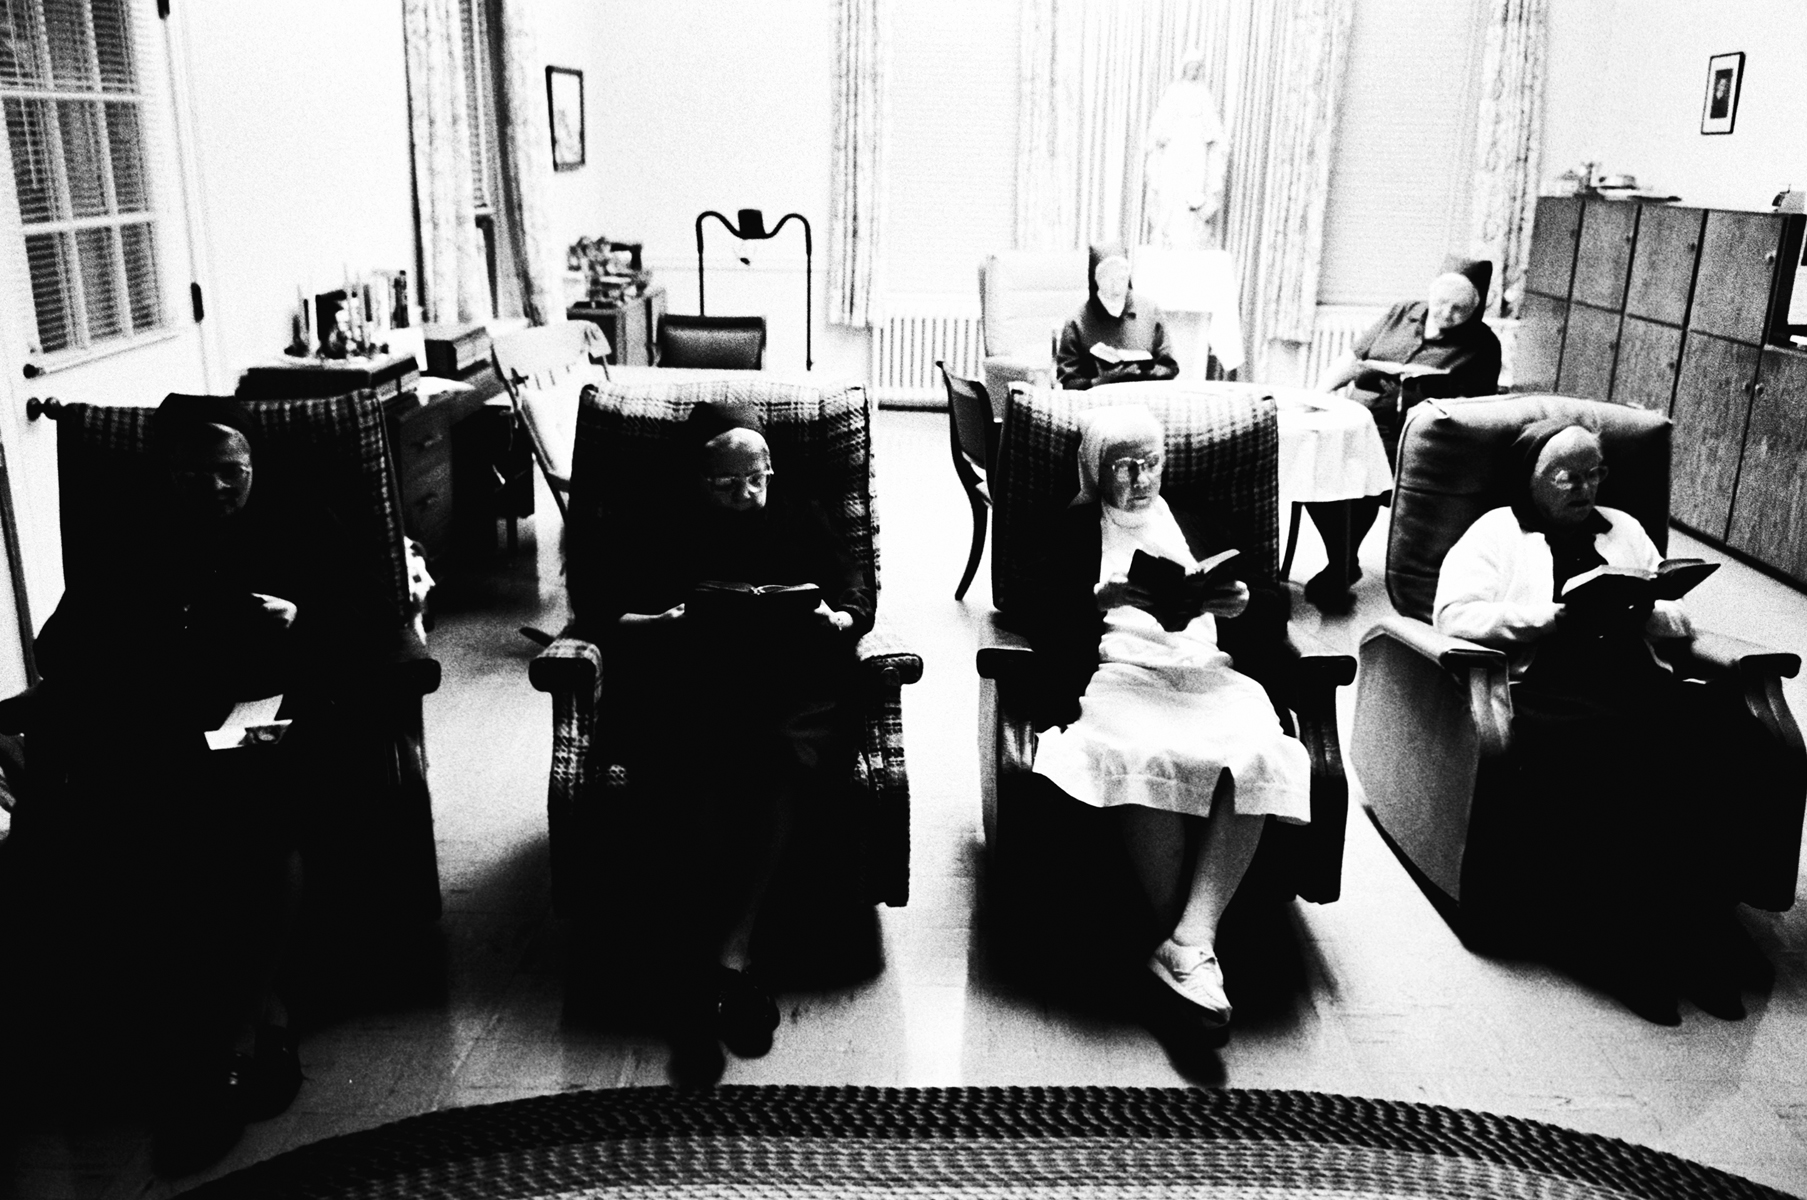 The Daughters of Charity of St. Vincent de Paul sit in their lazy-boy chairs, while reading excerpts of the bible together.  In 1894, Dr. Isadore Dyer established the facility in Carville, and arranged a contract with the Daughters of Charity, who have served at the New Orleans Charity Hospital for 60 years, to provide the new facility with nursing services and domestic managment. In 1896, the first four sisters arrived to up their duties at Carville, beginning a tradition that continues to the present.